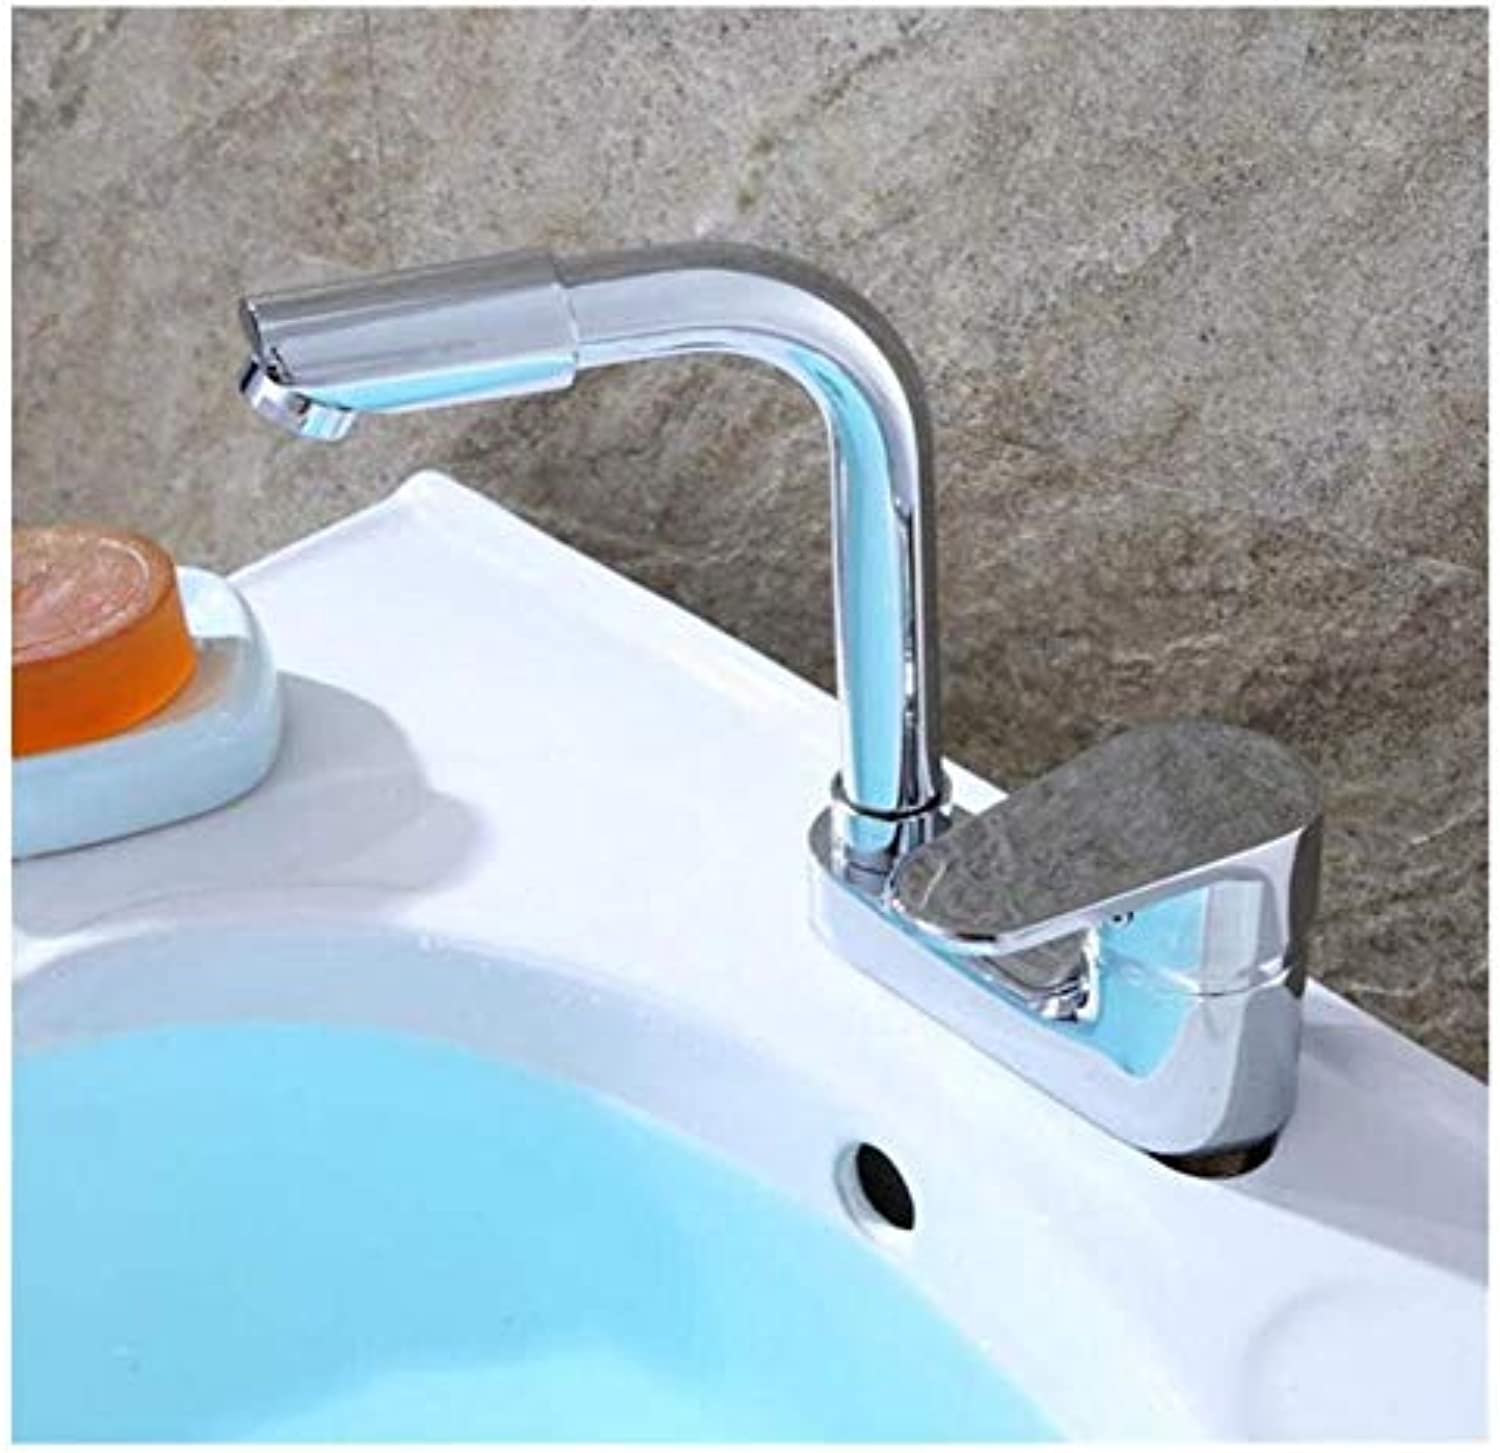 Brass Wall Faucet Chrome Brass Faucetfaucet Single Handle Double Hole Three Hole Hot and Cold Water Control